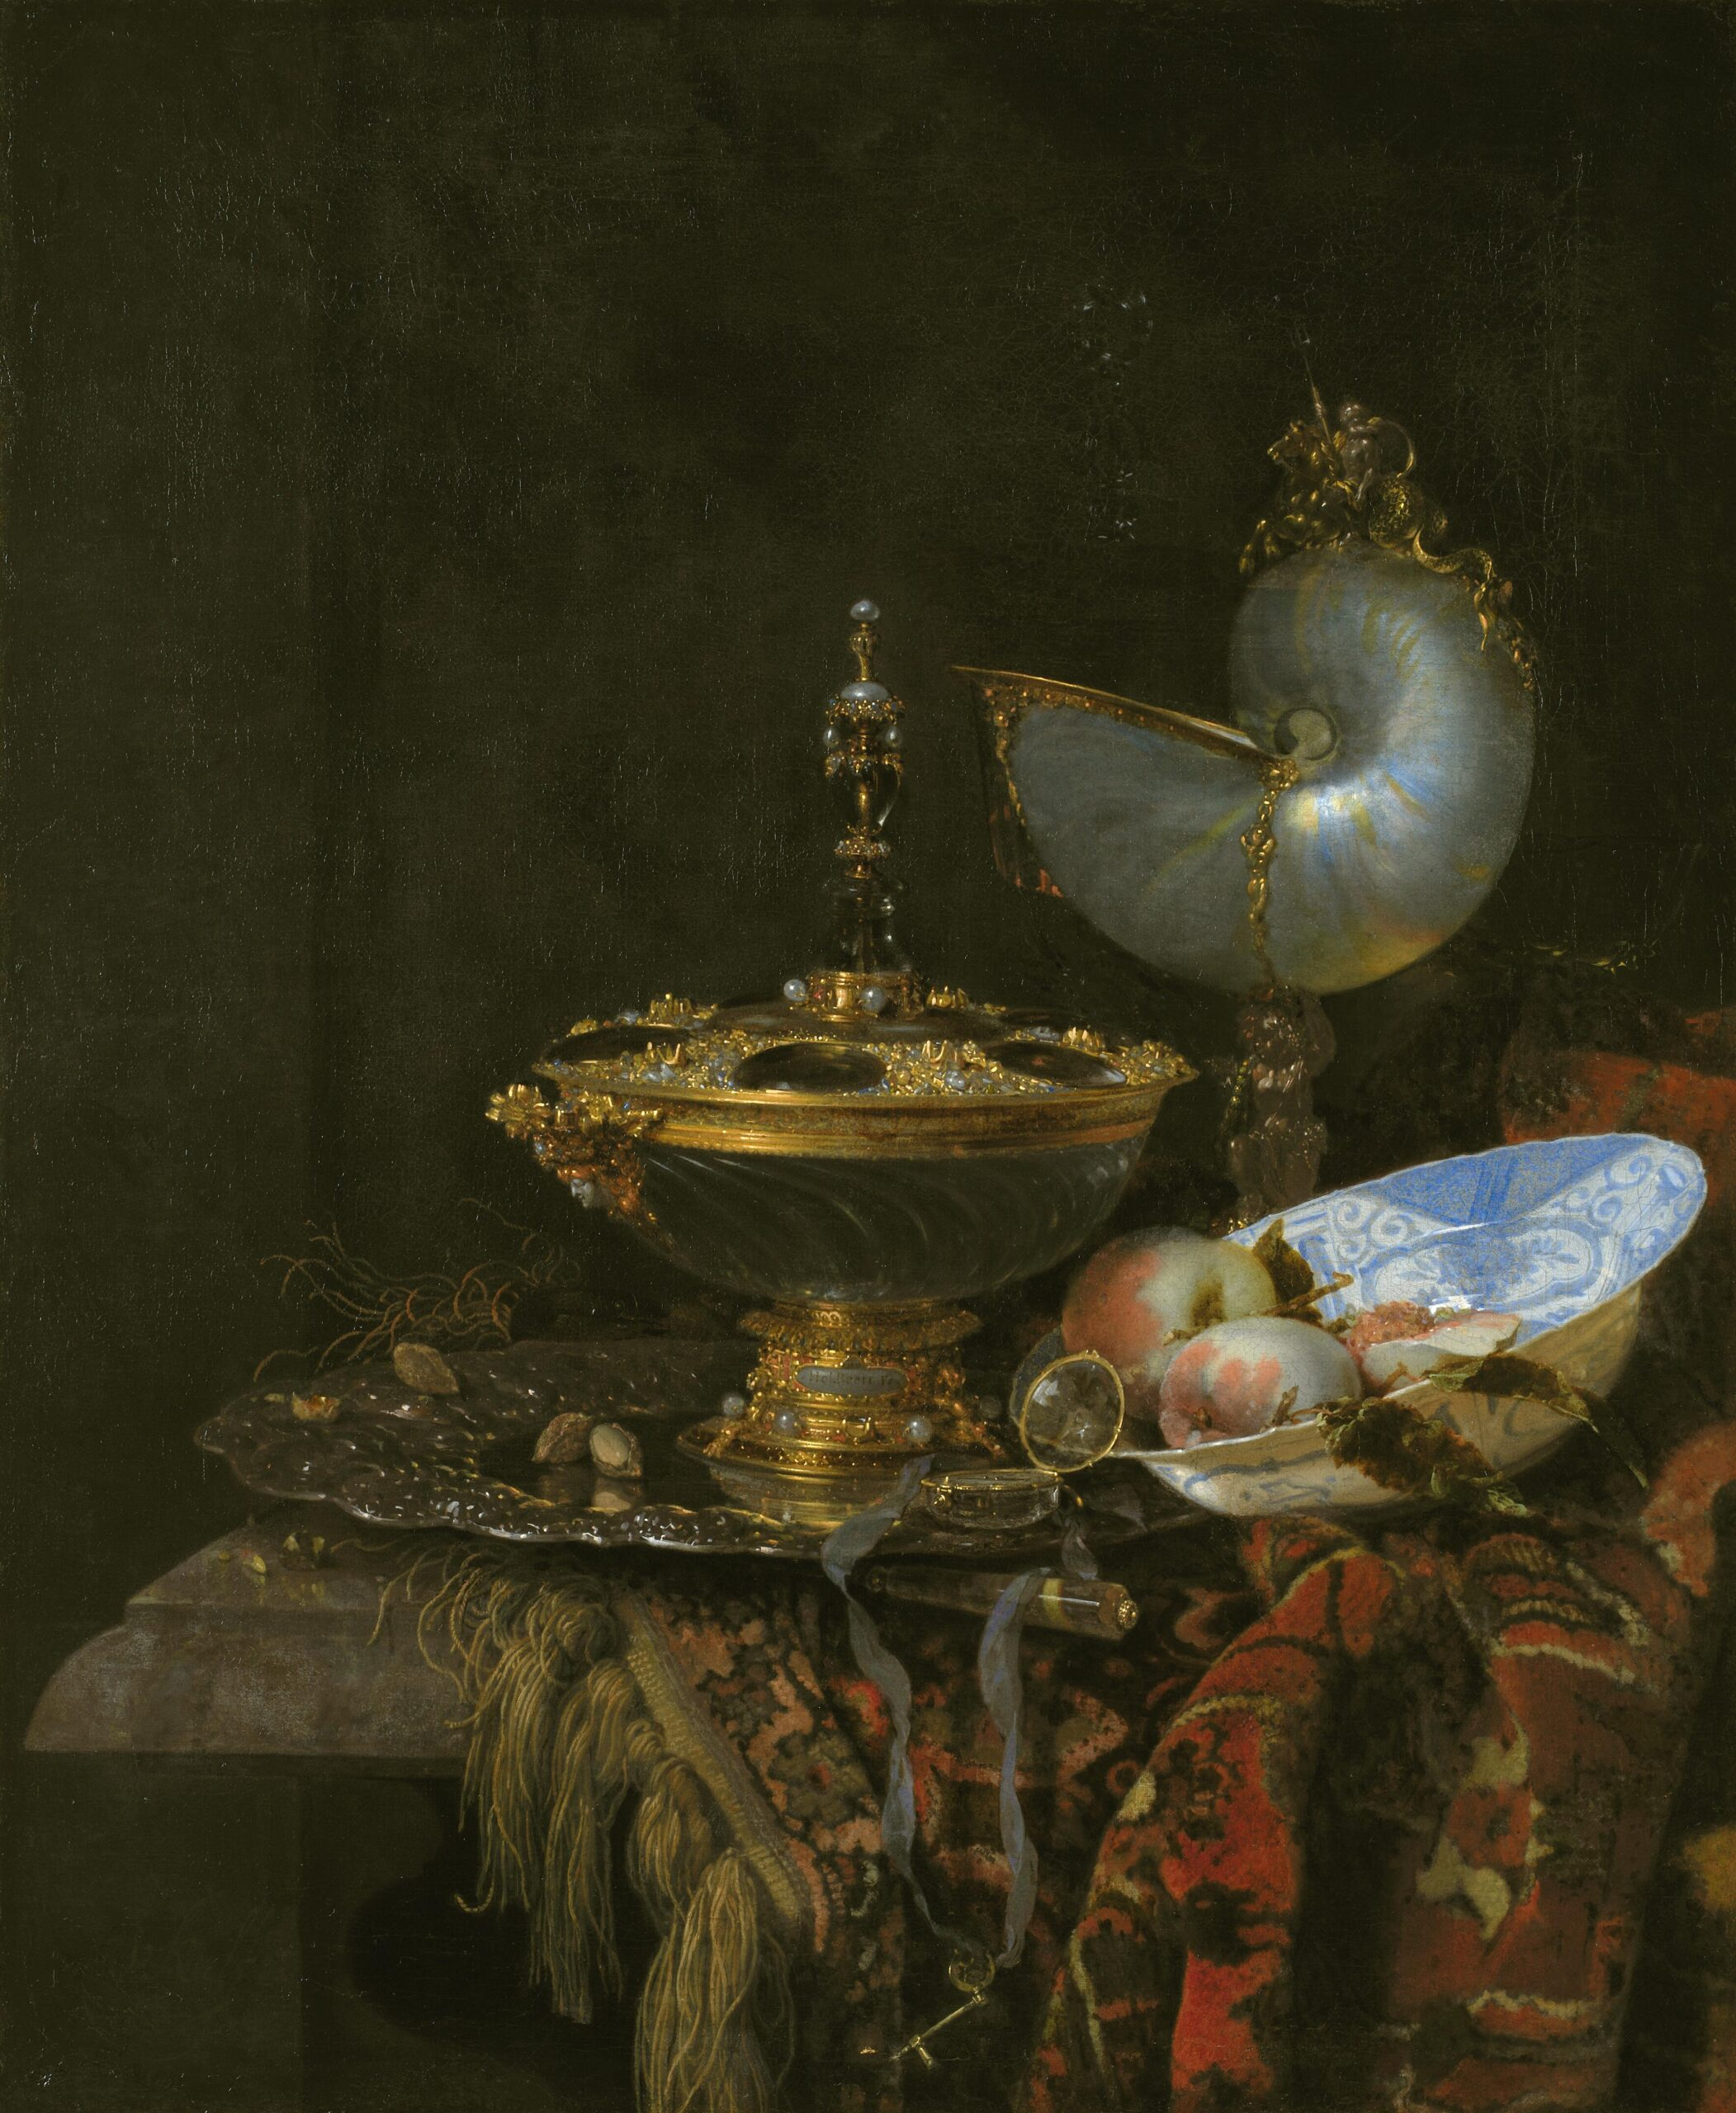 Fig. 5. Willem Kalf (1619–1693), Pronk Still Life, 1678 Statens Museum for Kunst, Copenhagen